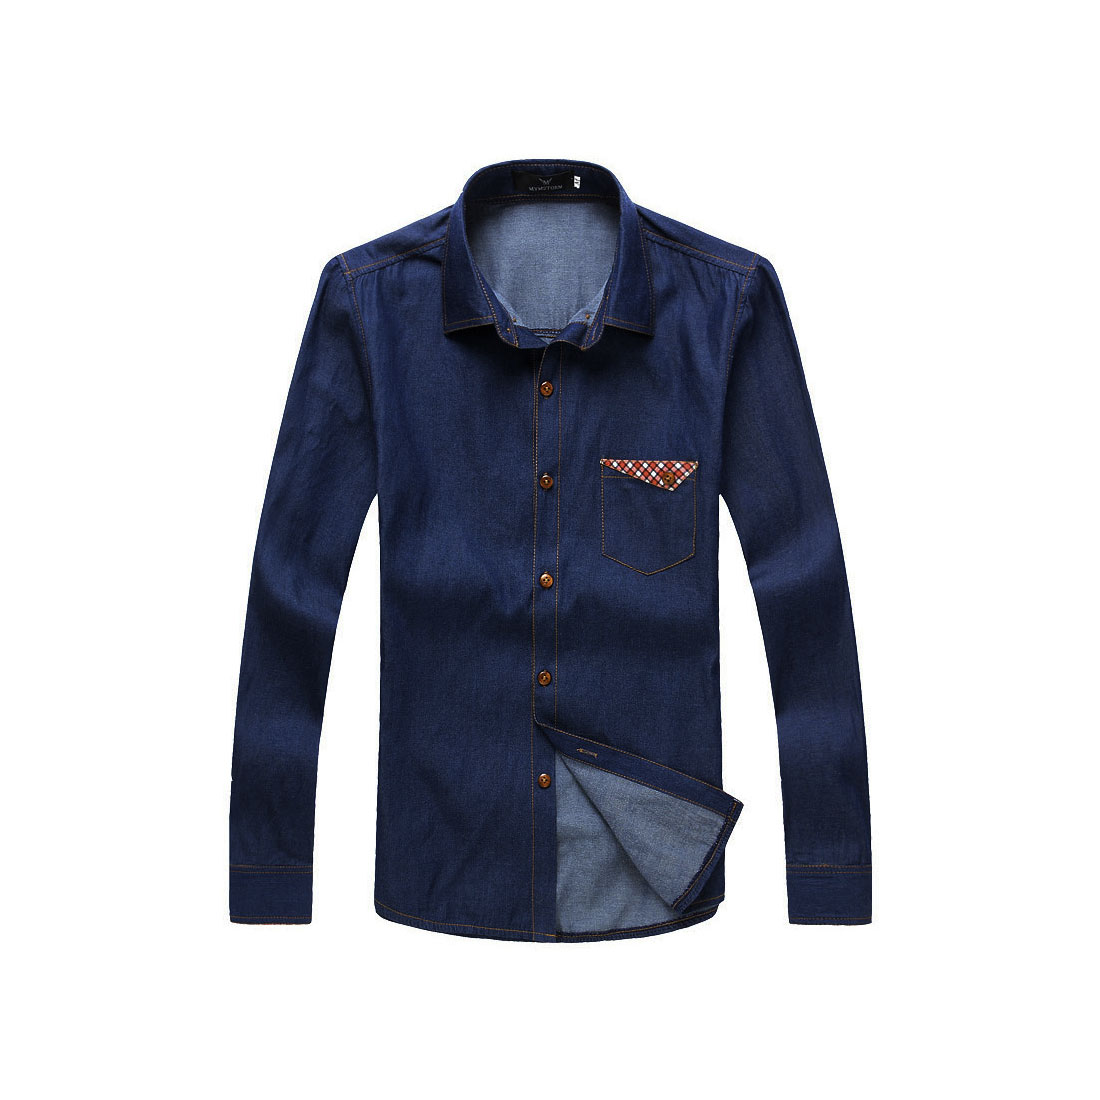 Mens Dark Blue Point Collar Round Hem Fashional Casual Autumn Shirt M